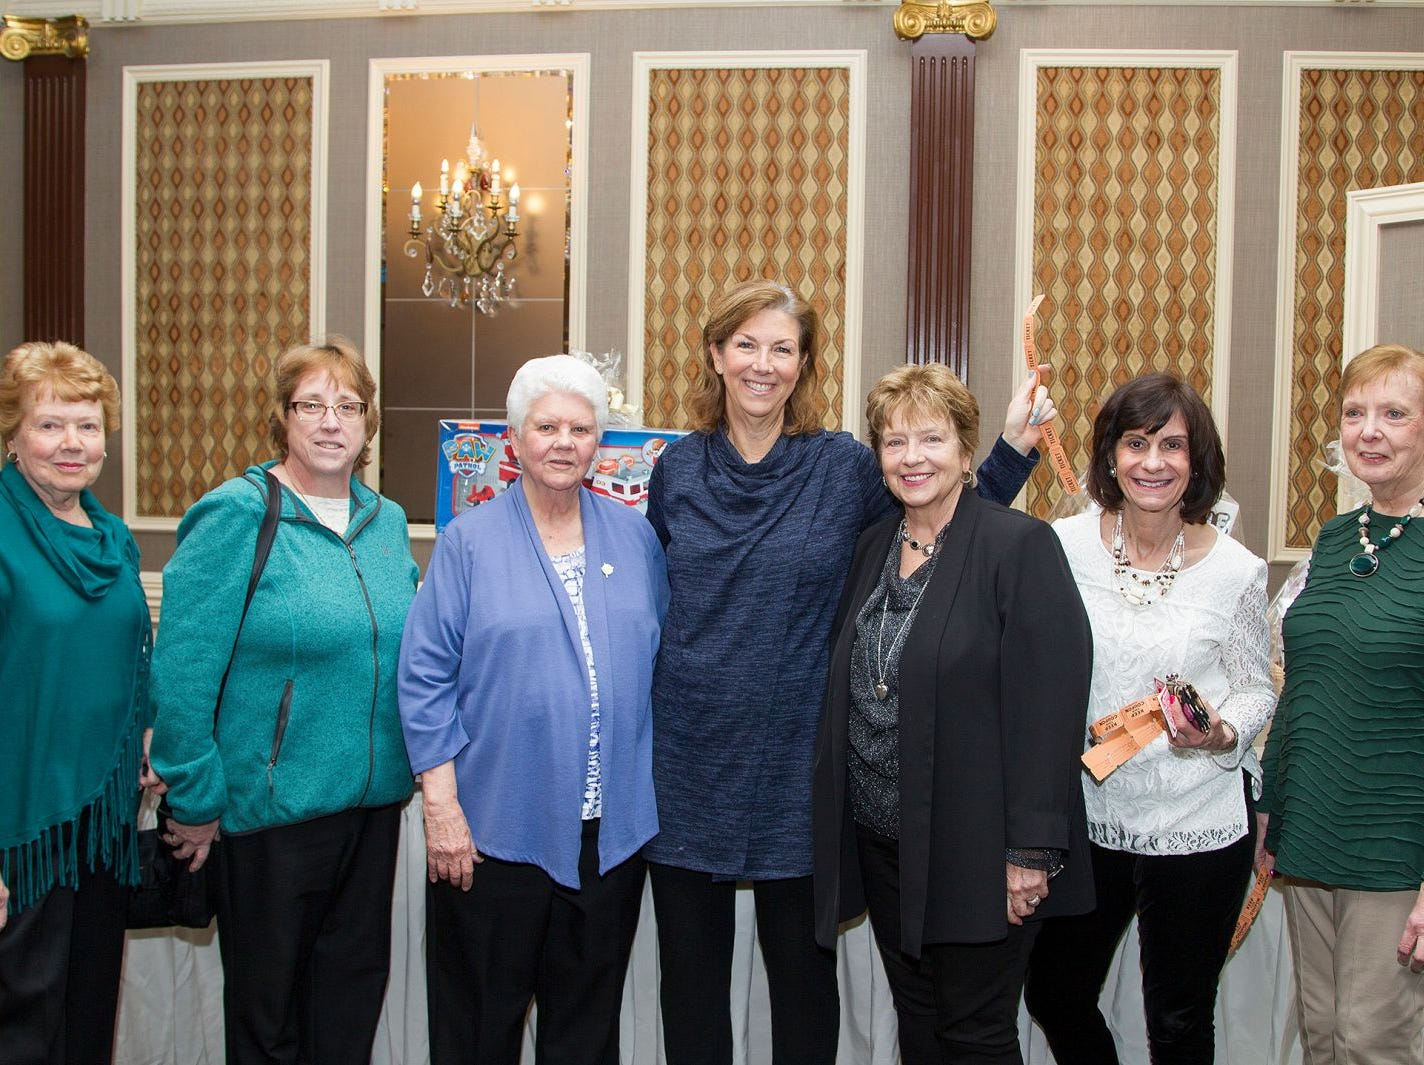 Maryann Miko, Sue Moleti, Sister Rosemarie Kean, Deb Duffy, Gloria Oberle, Denise Nicolosi, Lorraine Schroers.  A Night at the Races hosted by OASIS at the Brownstone in Paterson. 2/7/2019